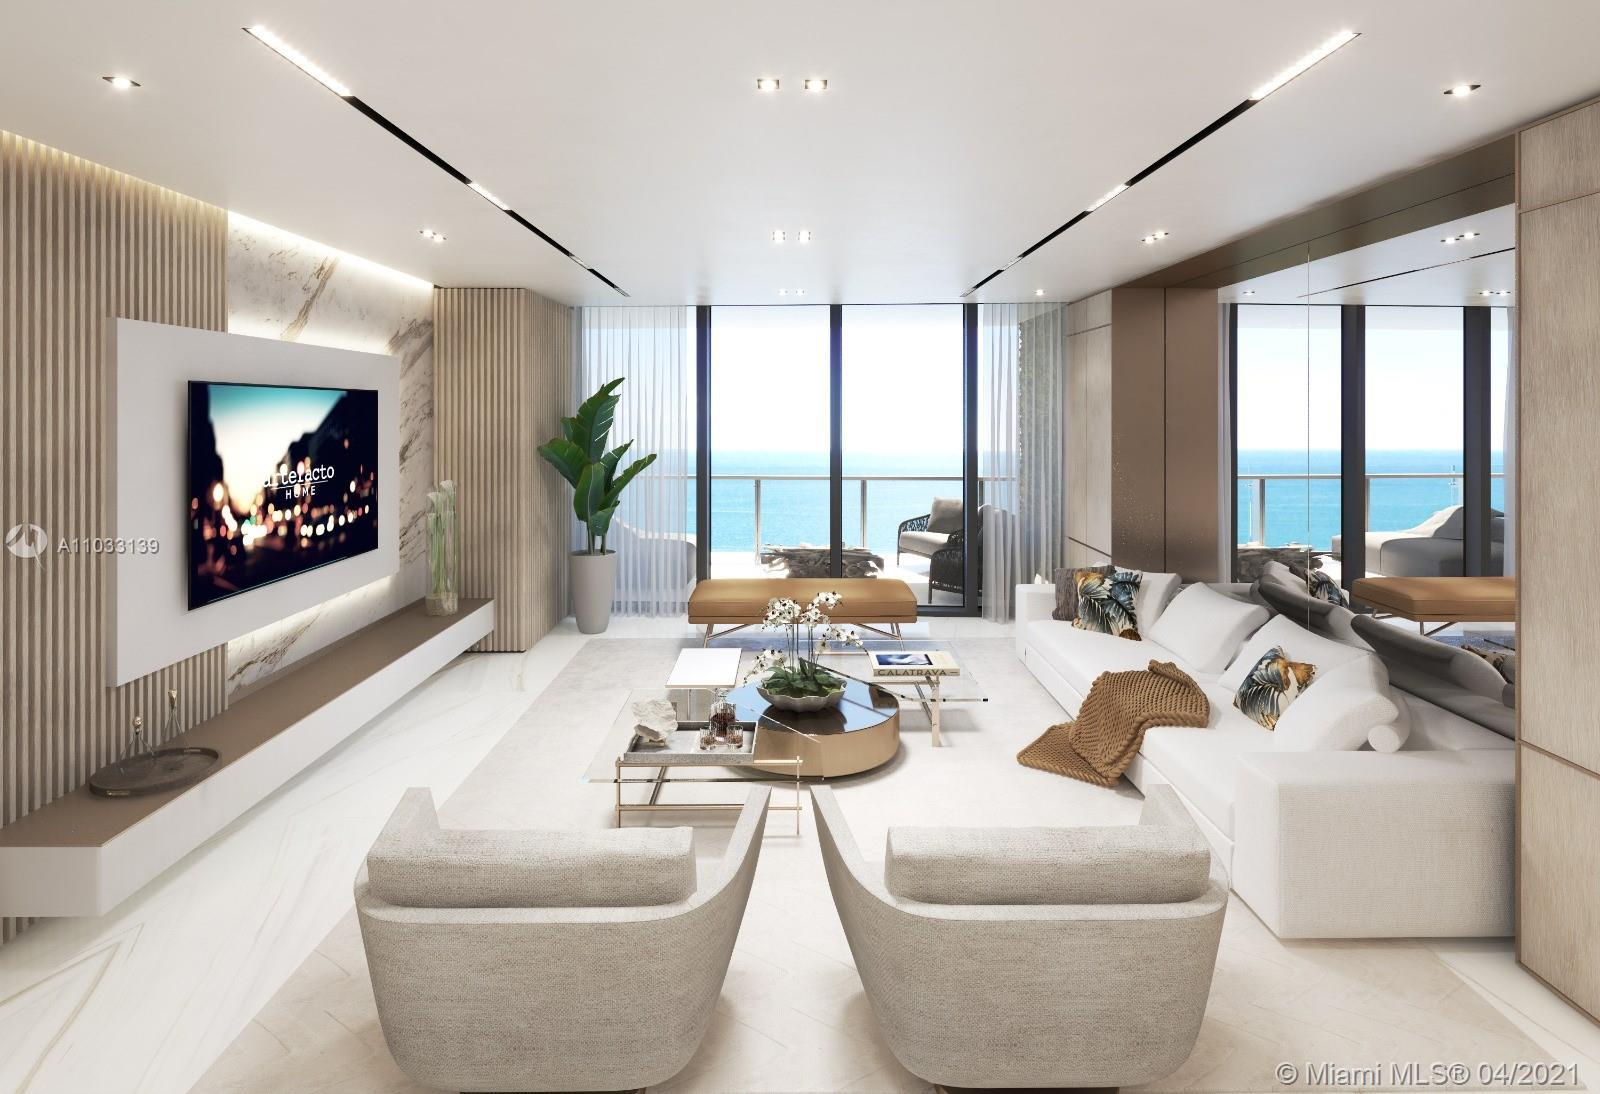 NEW ULTRA LUXURY & MOVE-IN READY. No Developer Fees. Turnberry Ocean Club offers top lifestyle ameni